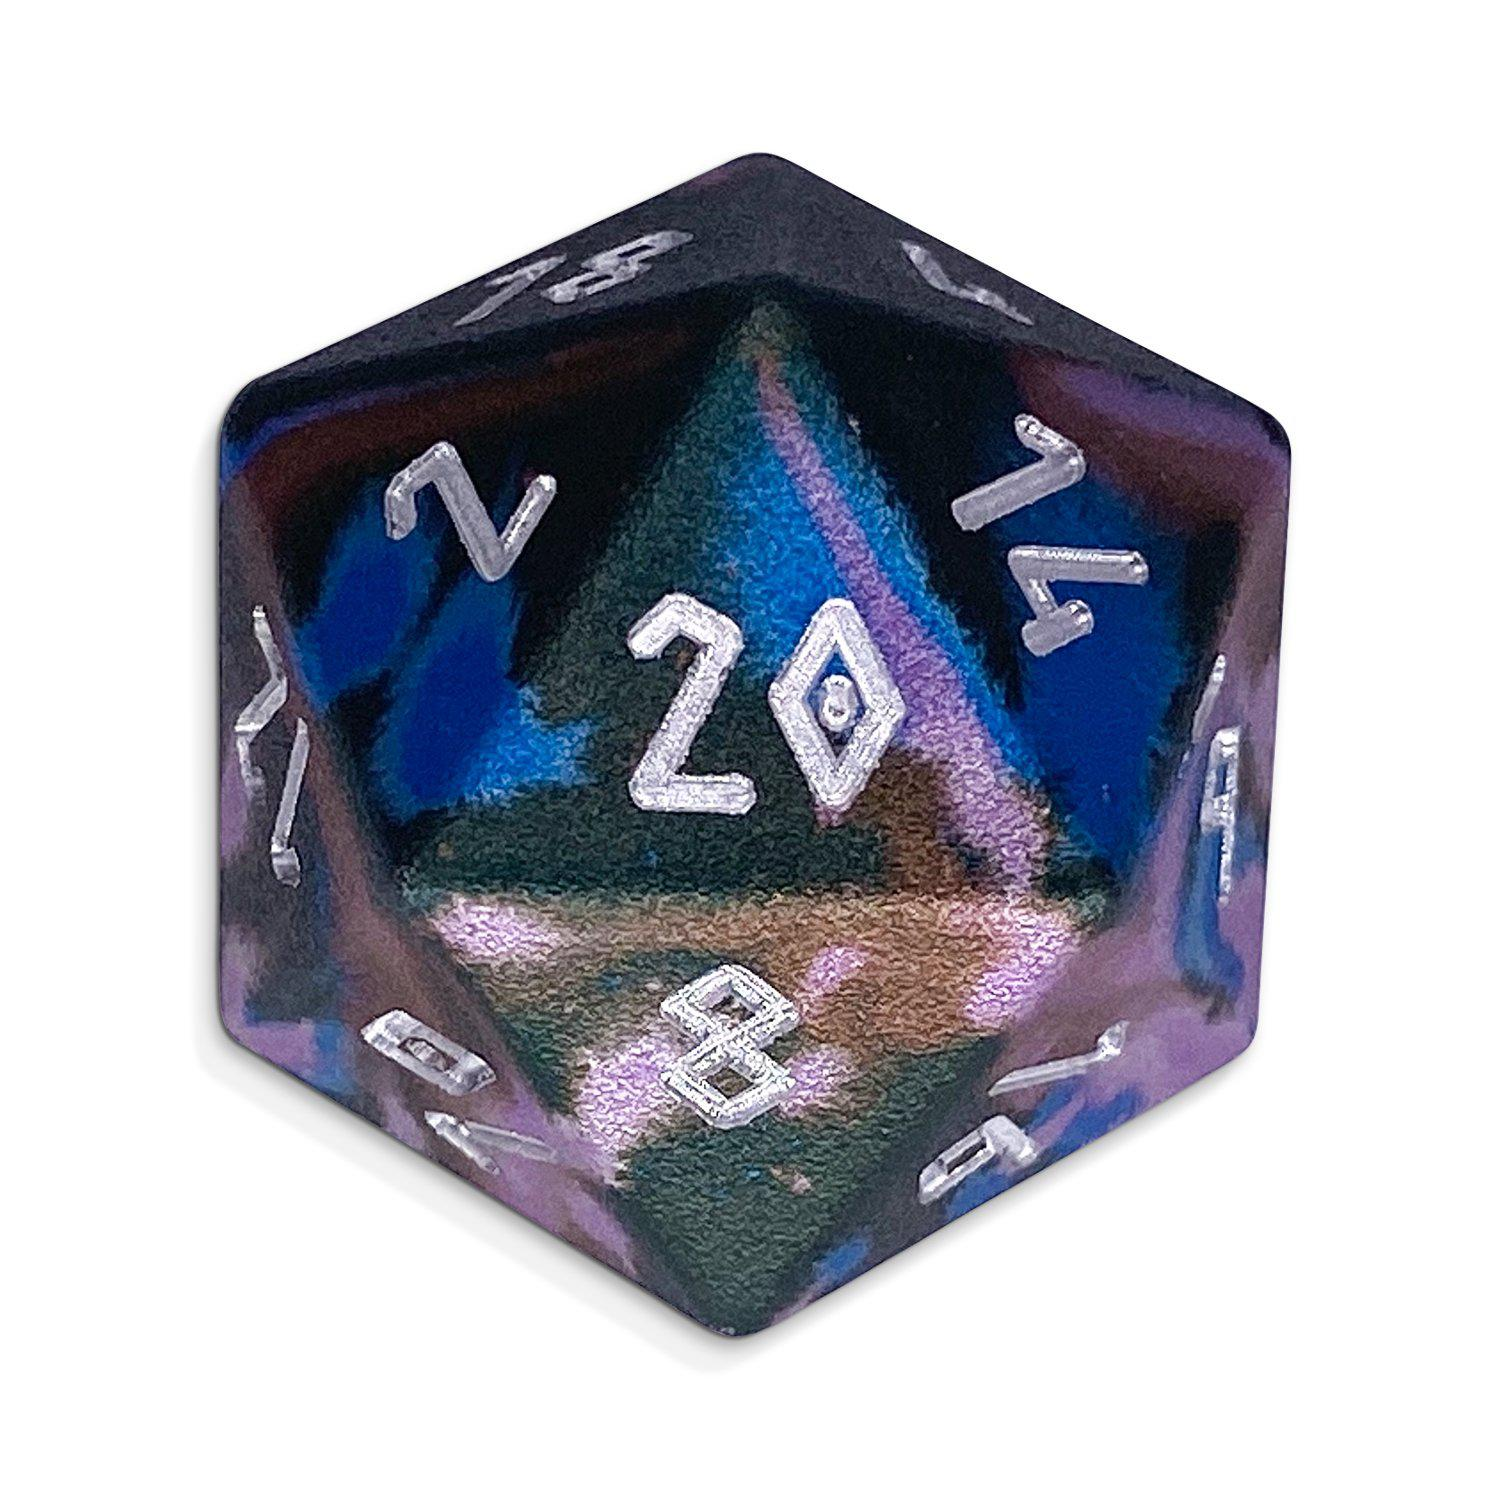 Single Wondrous Dice® D20 in Enchanted Forest by Norse Foundry 6063 Aircraft Grade Aluminum